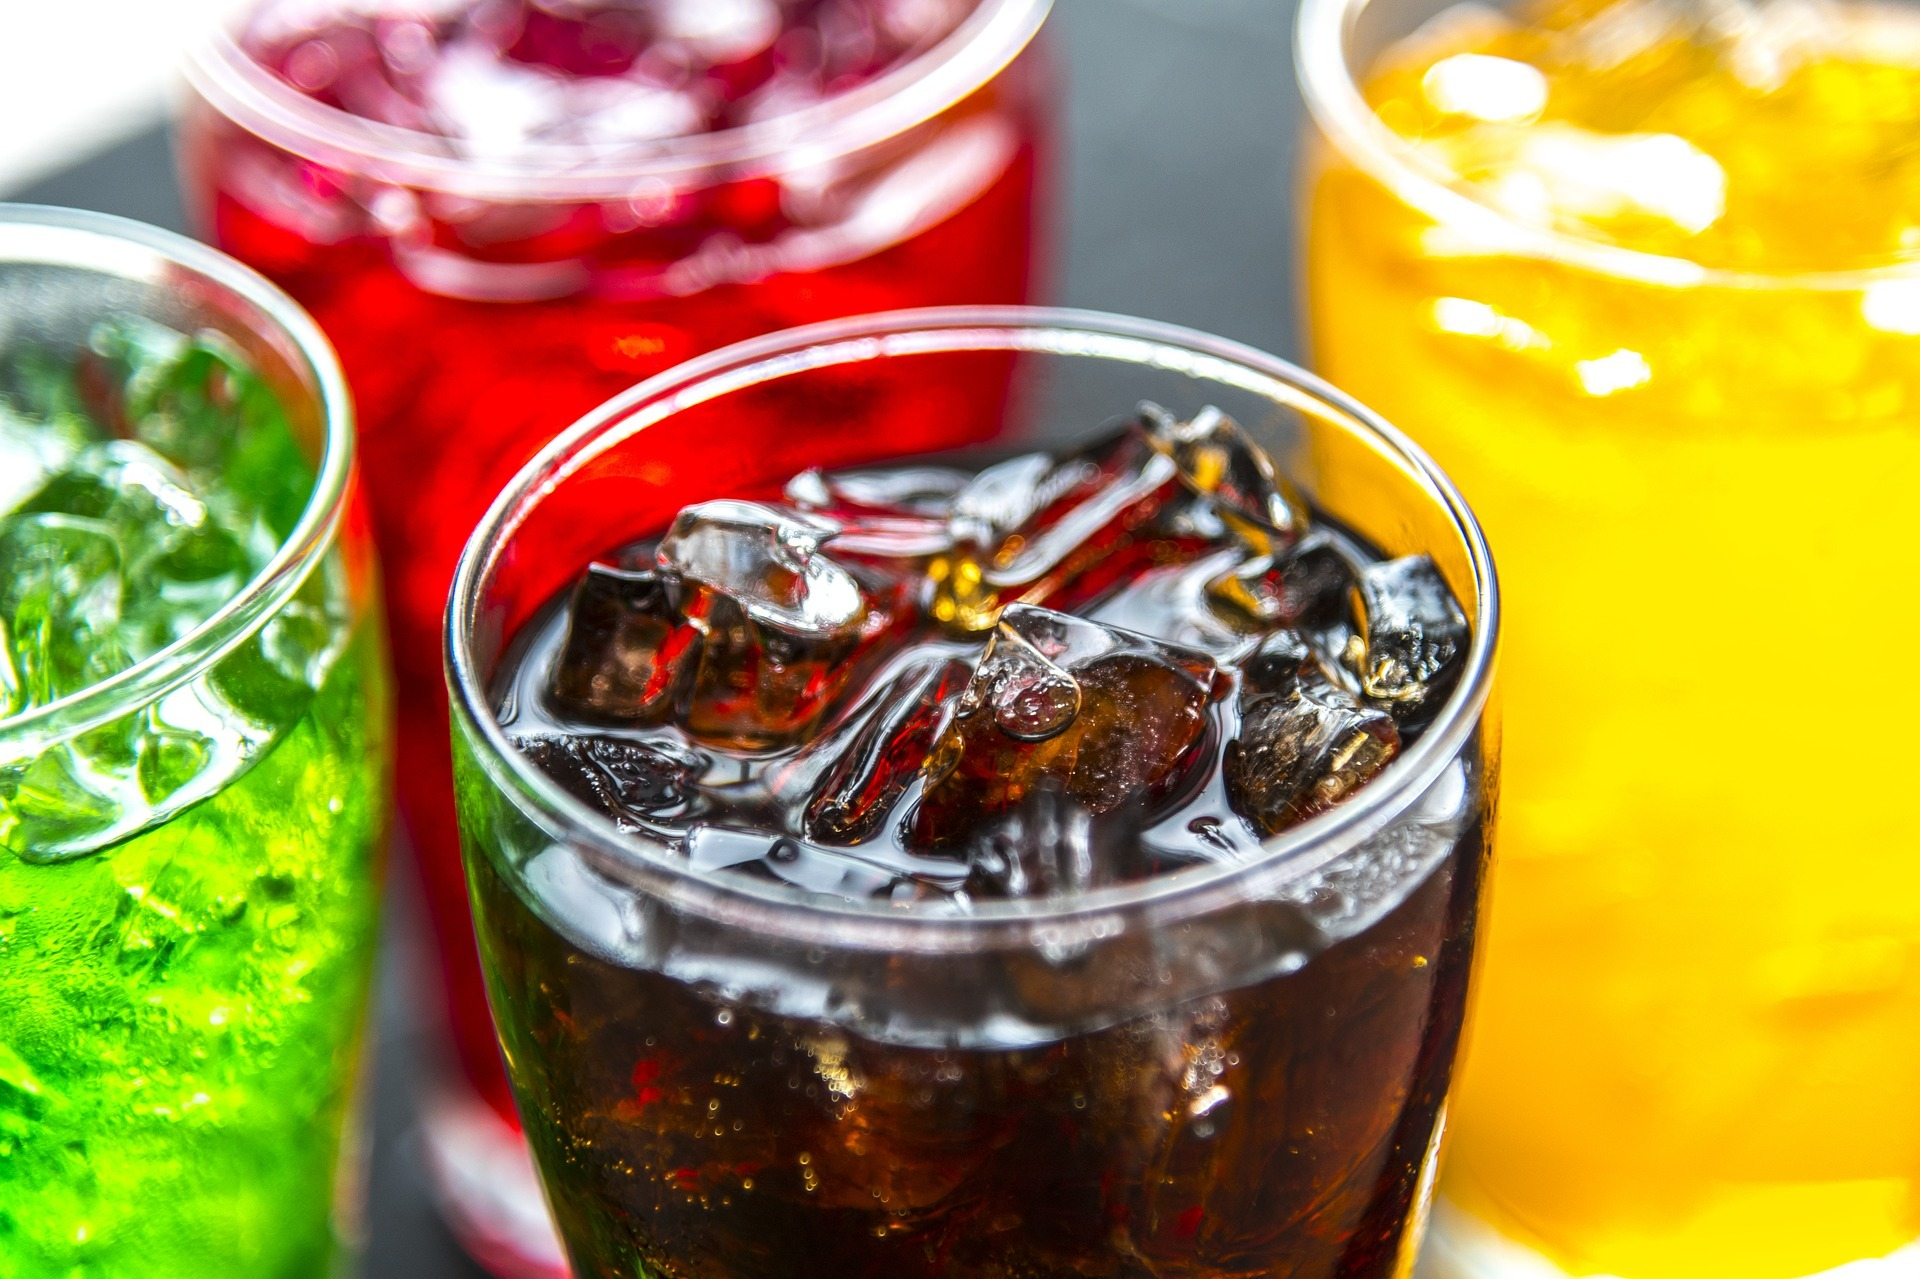 Bacteria from poo was found in drinks at a number of popular pubs